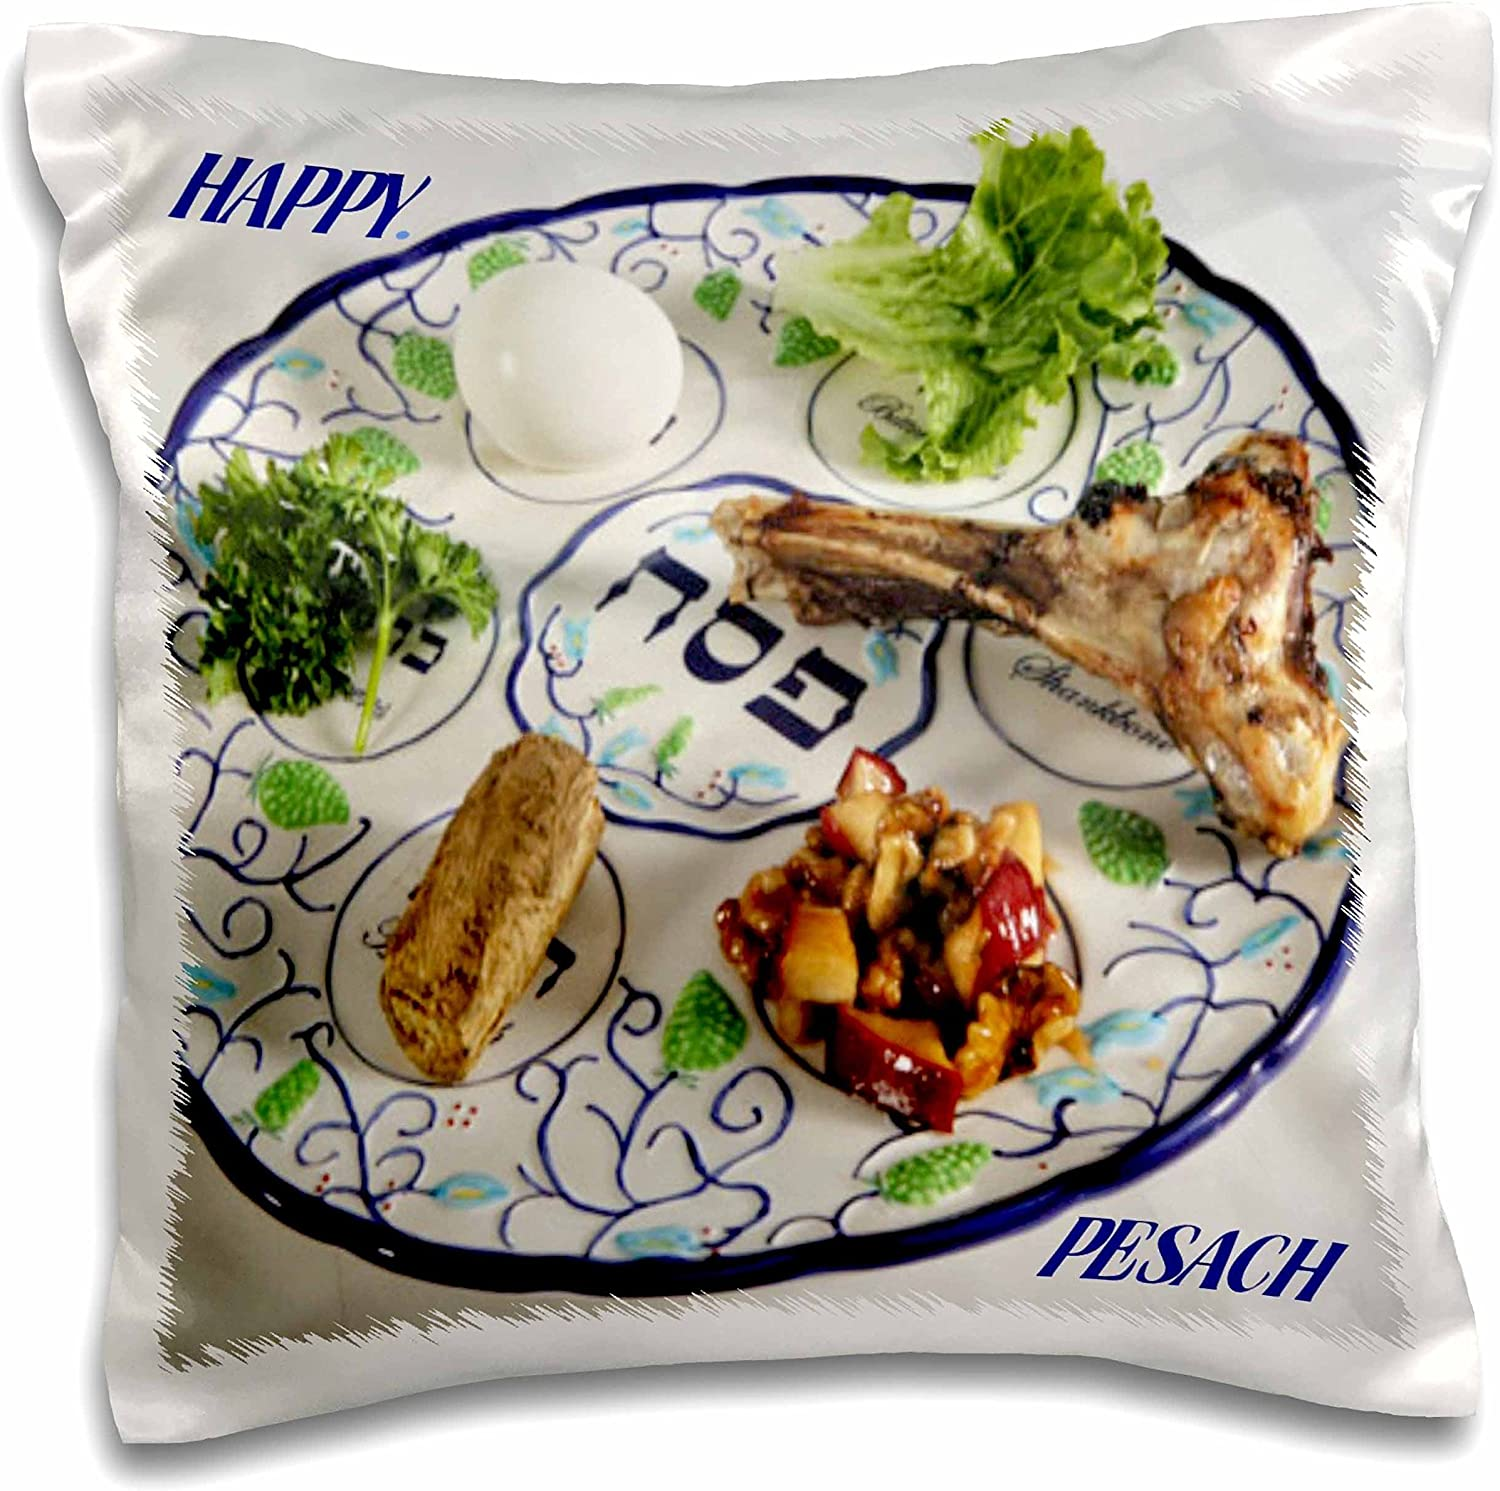 3dRose Pesach Plate with Passover Foods-Pillow Case, 16 by 16